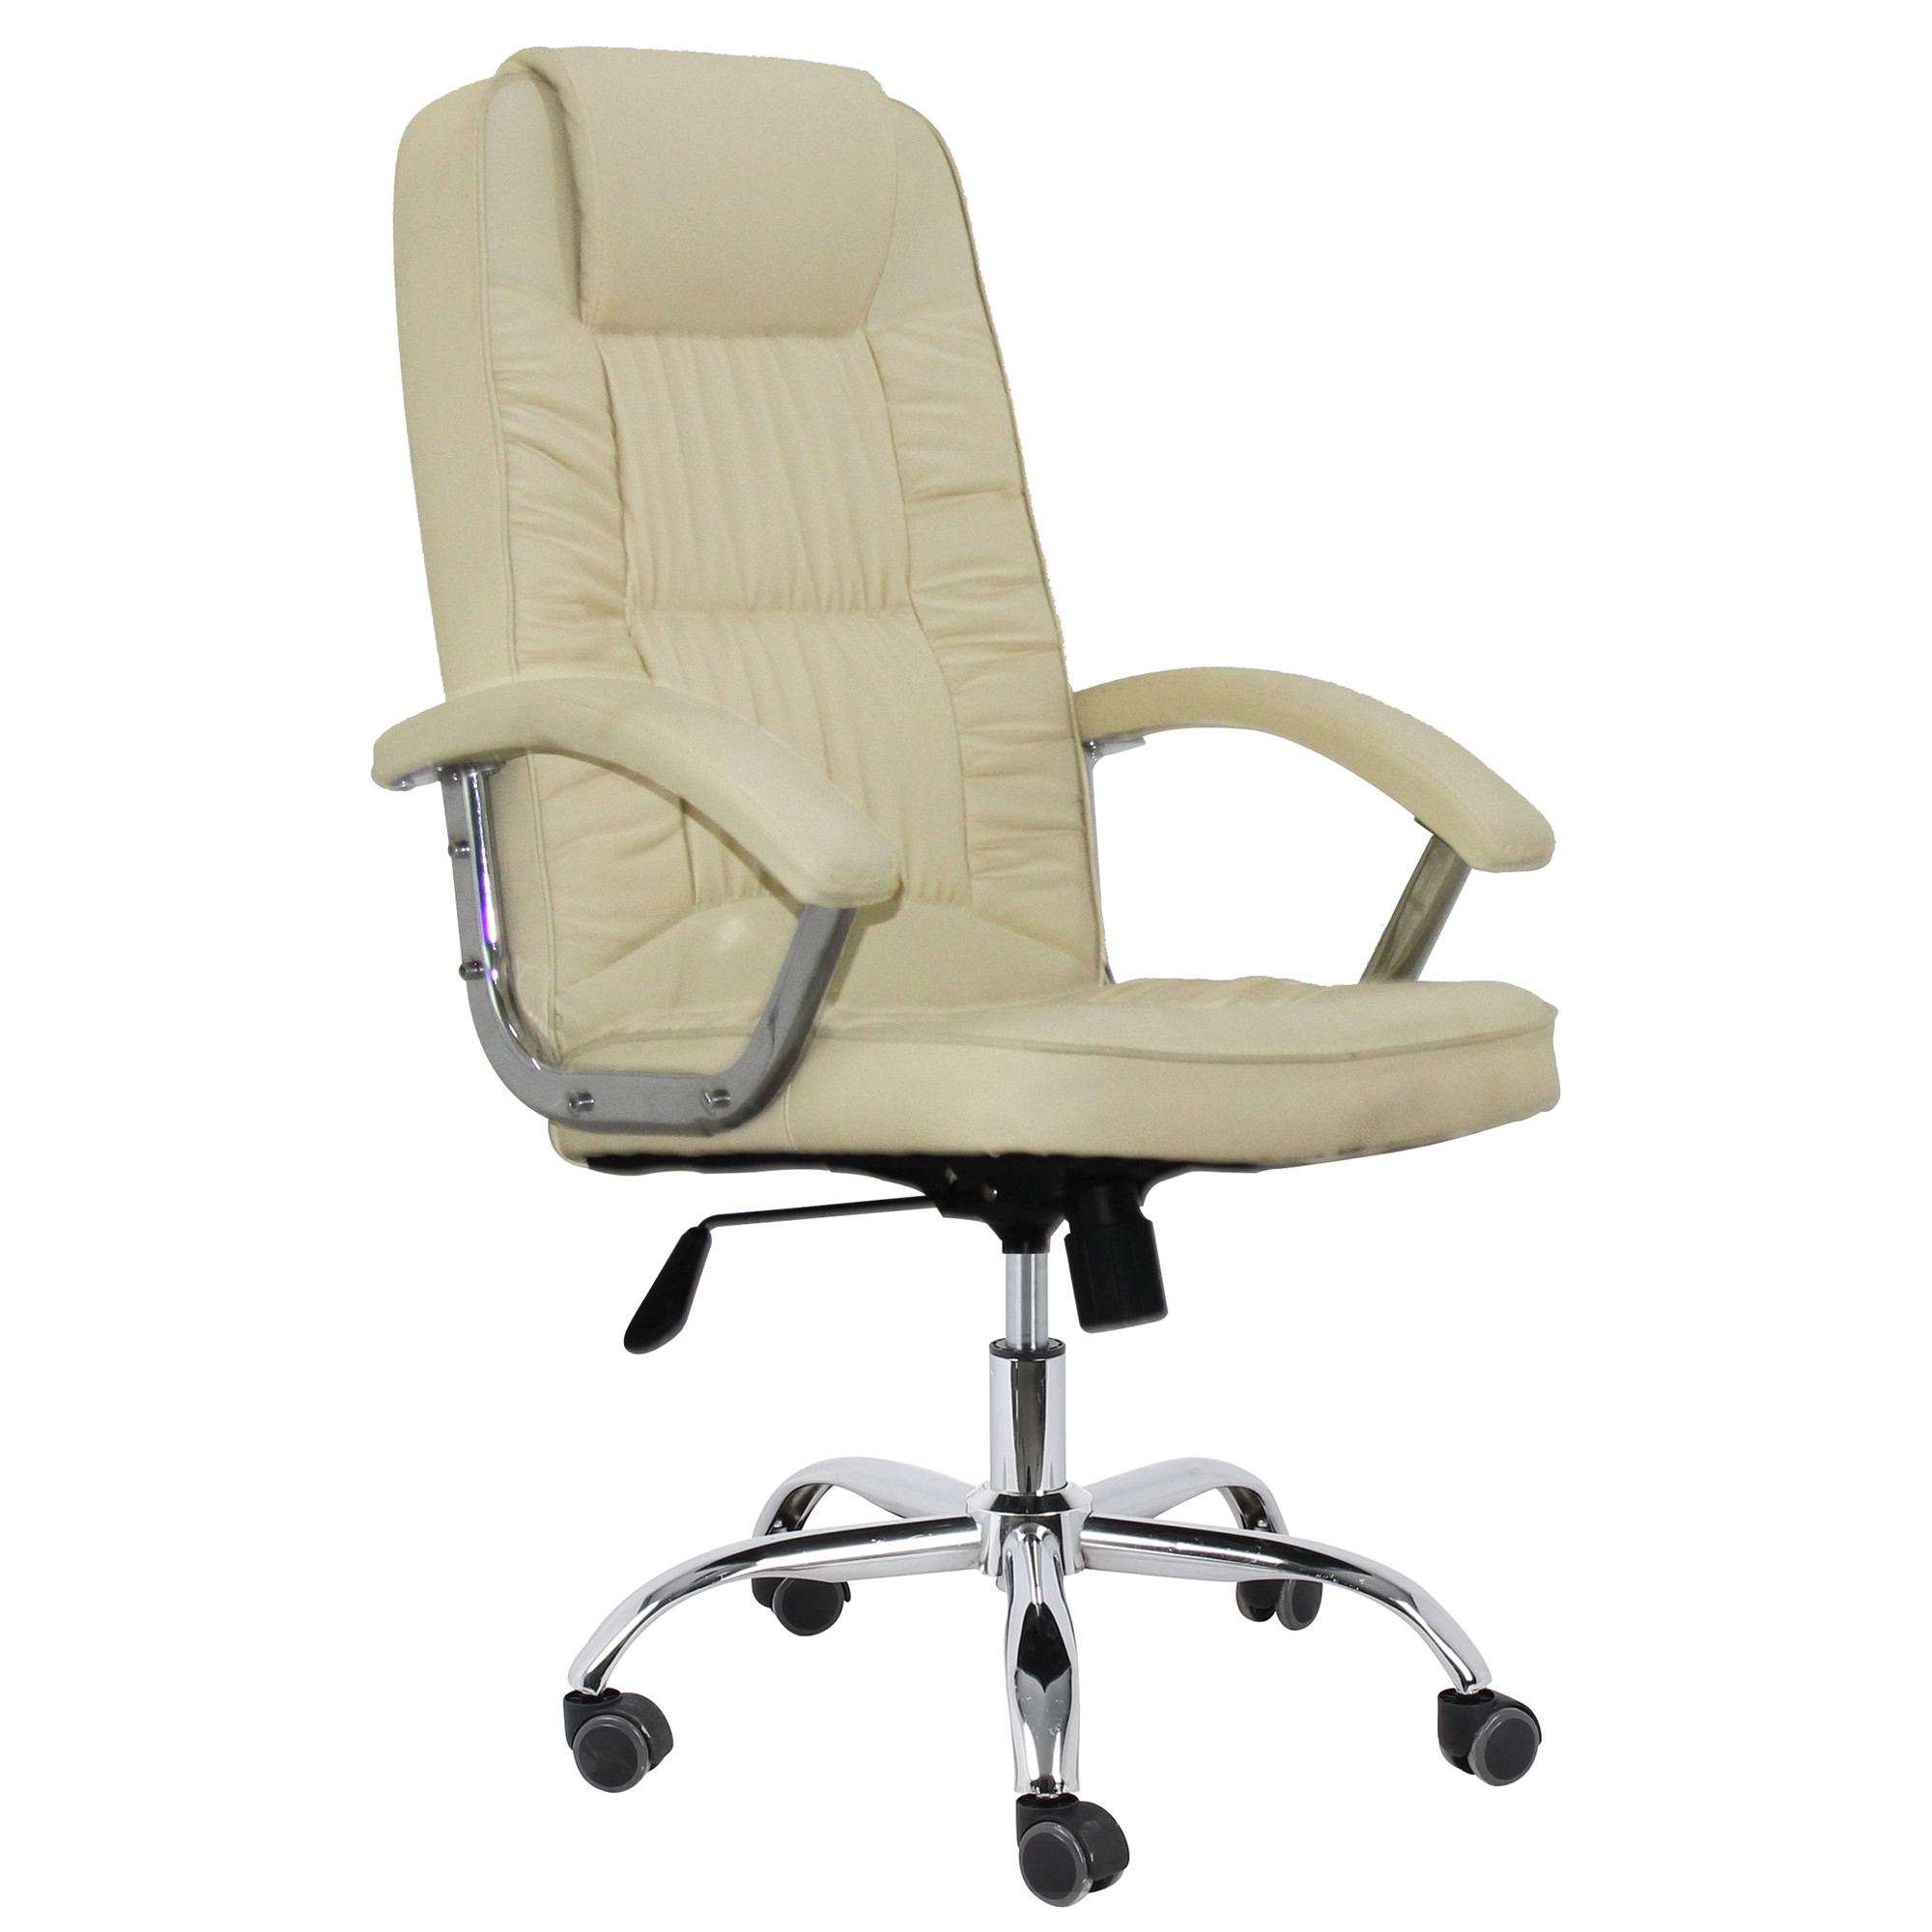 Office Armchair PAOLO, High, Gas, Tilt, Similpiel Beige